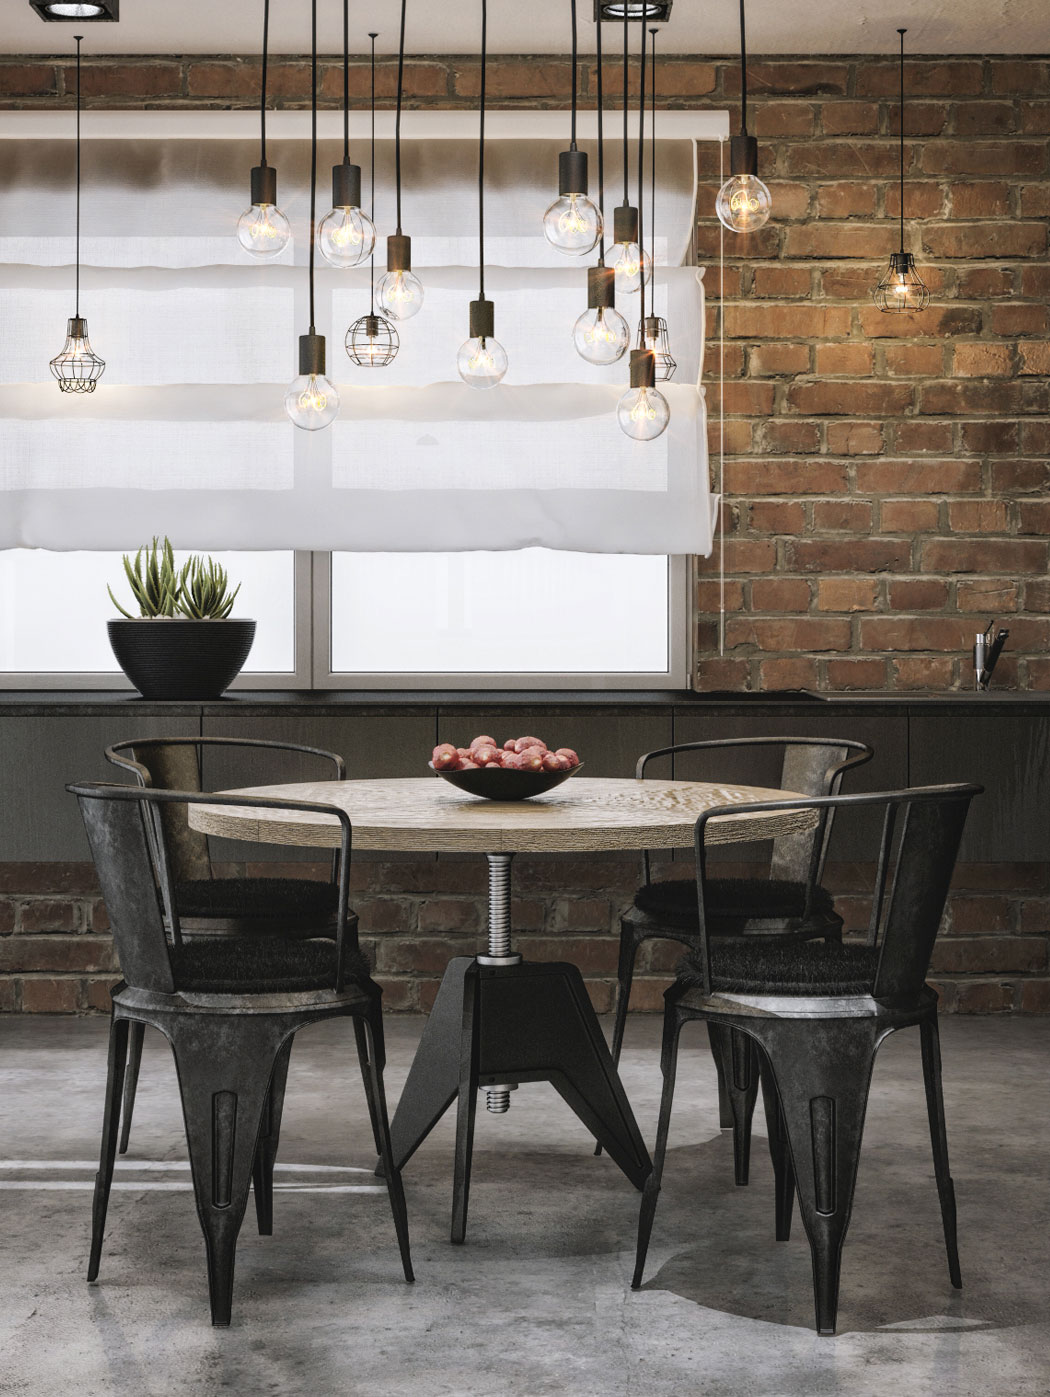 wall lighting living room ideas built in furniture modern loft kaunas: industrial style wrapped ...